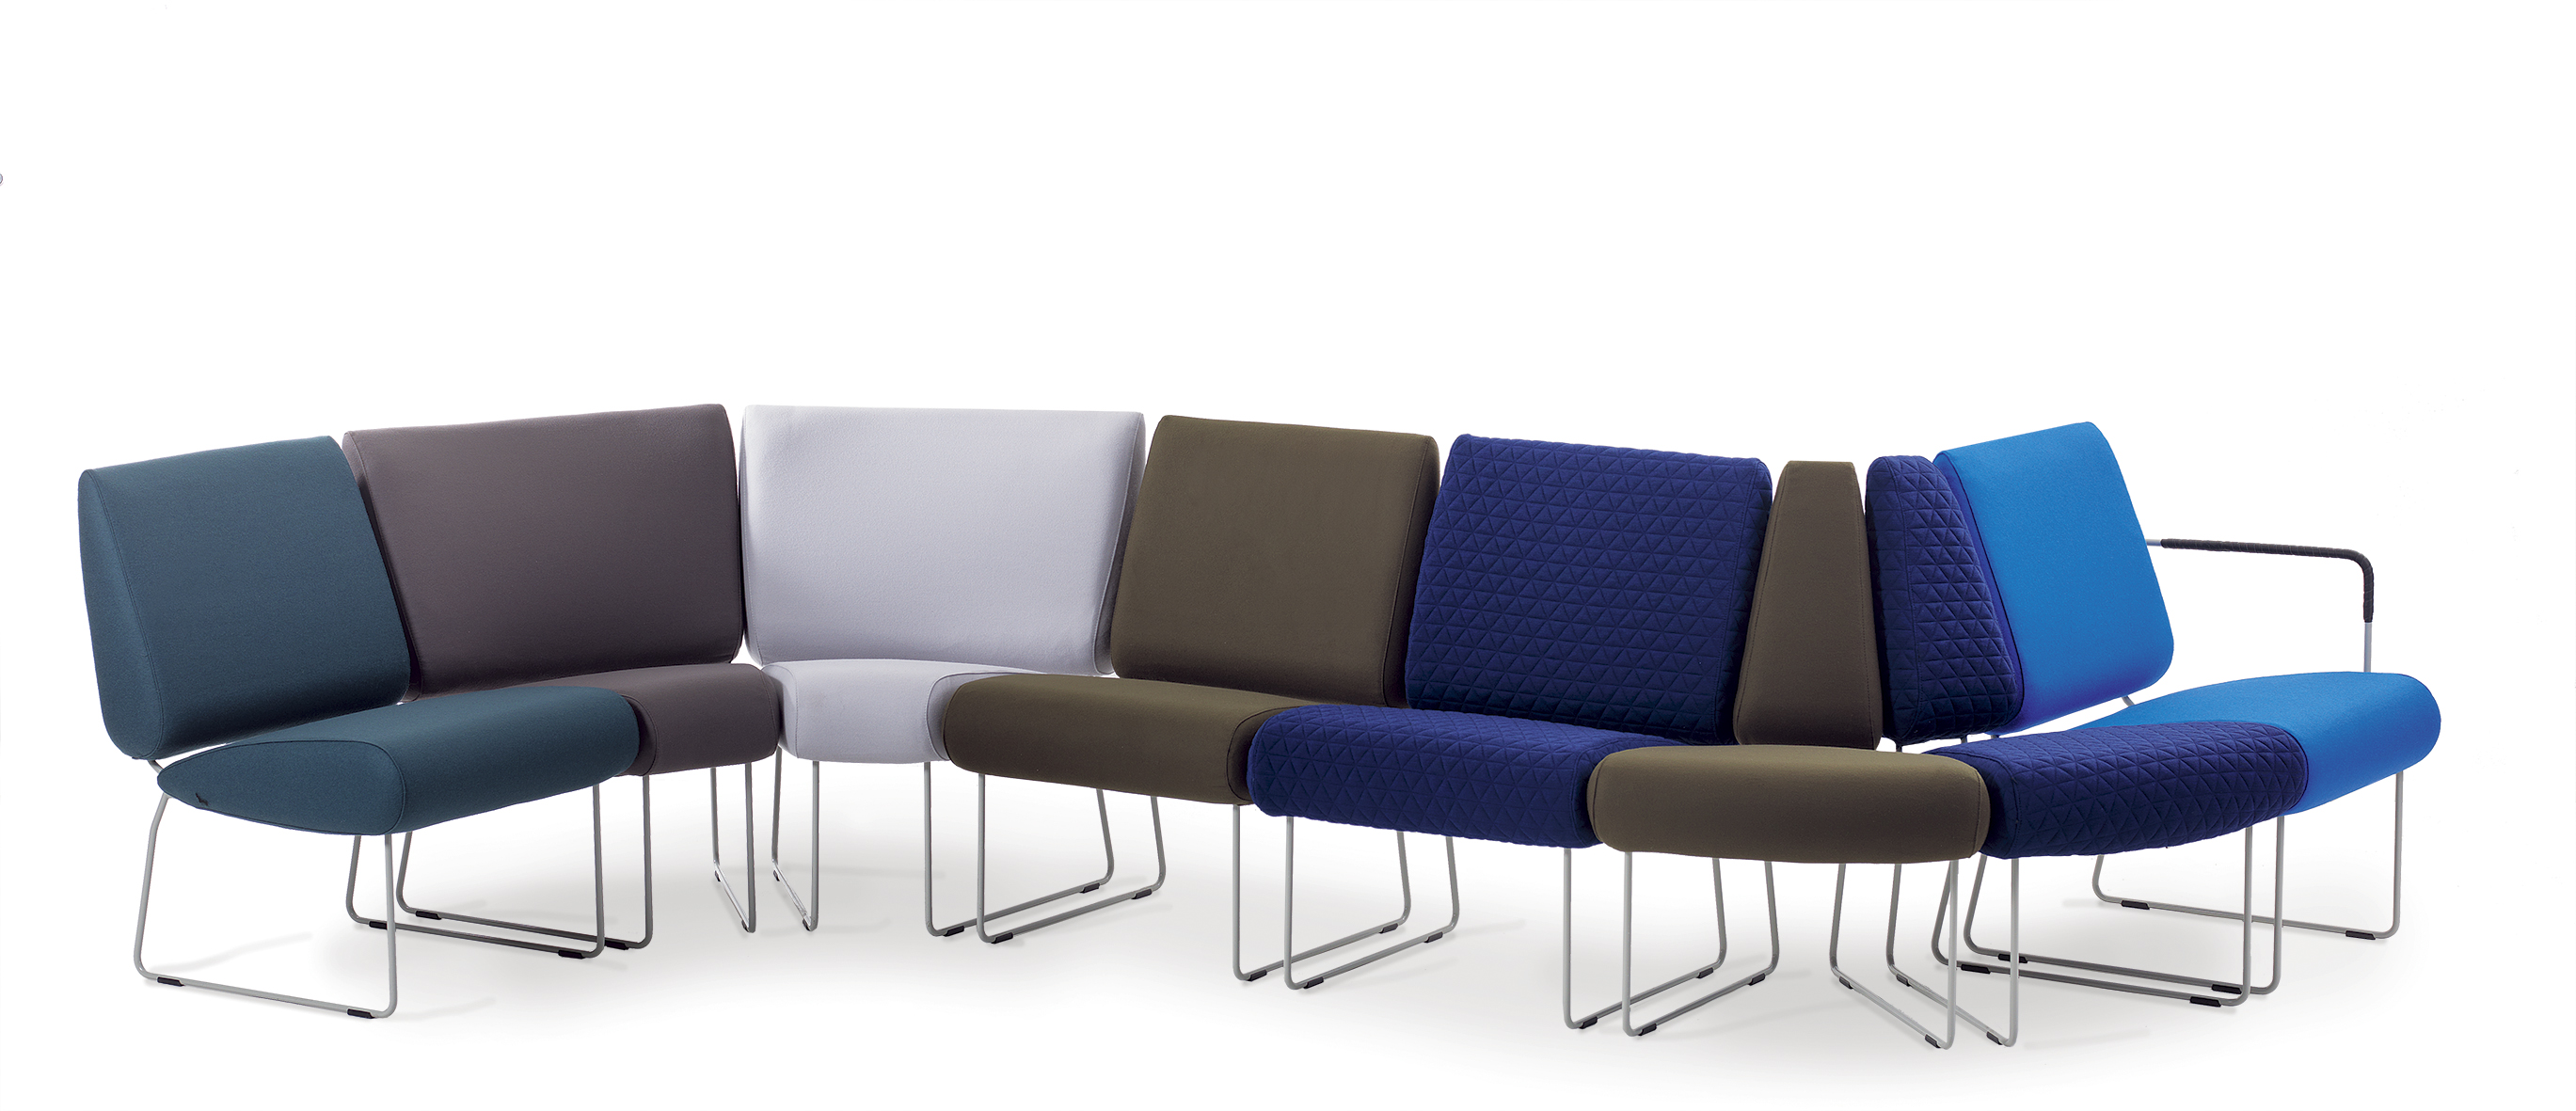 Friends Modular Sofa by Alexander Lervik for Johanson Design